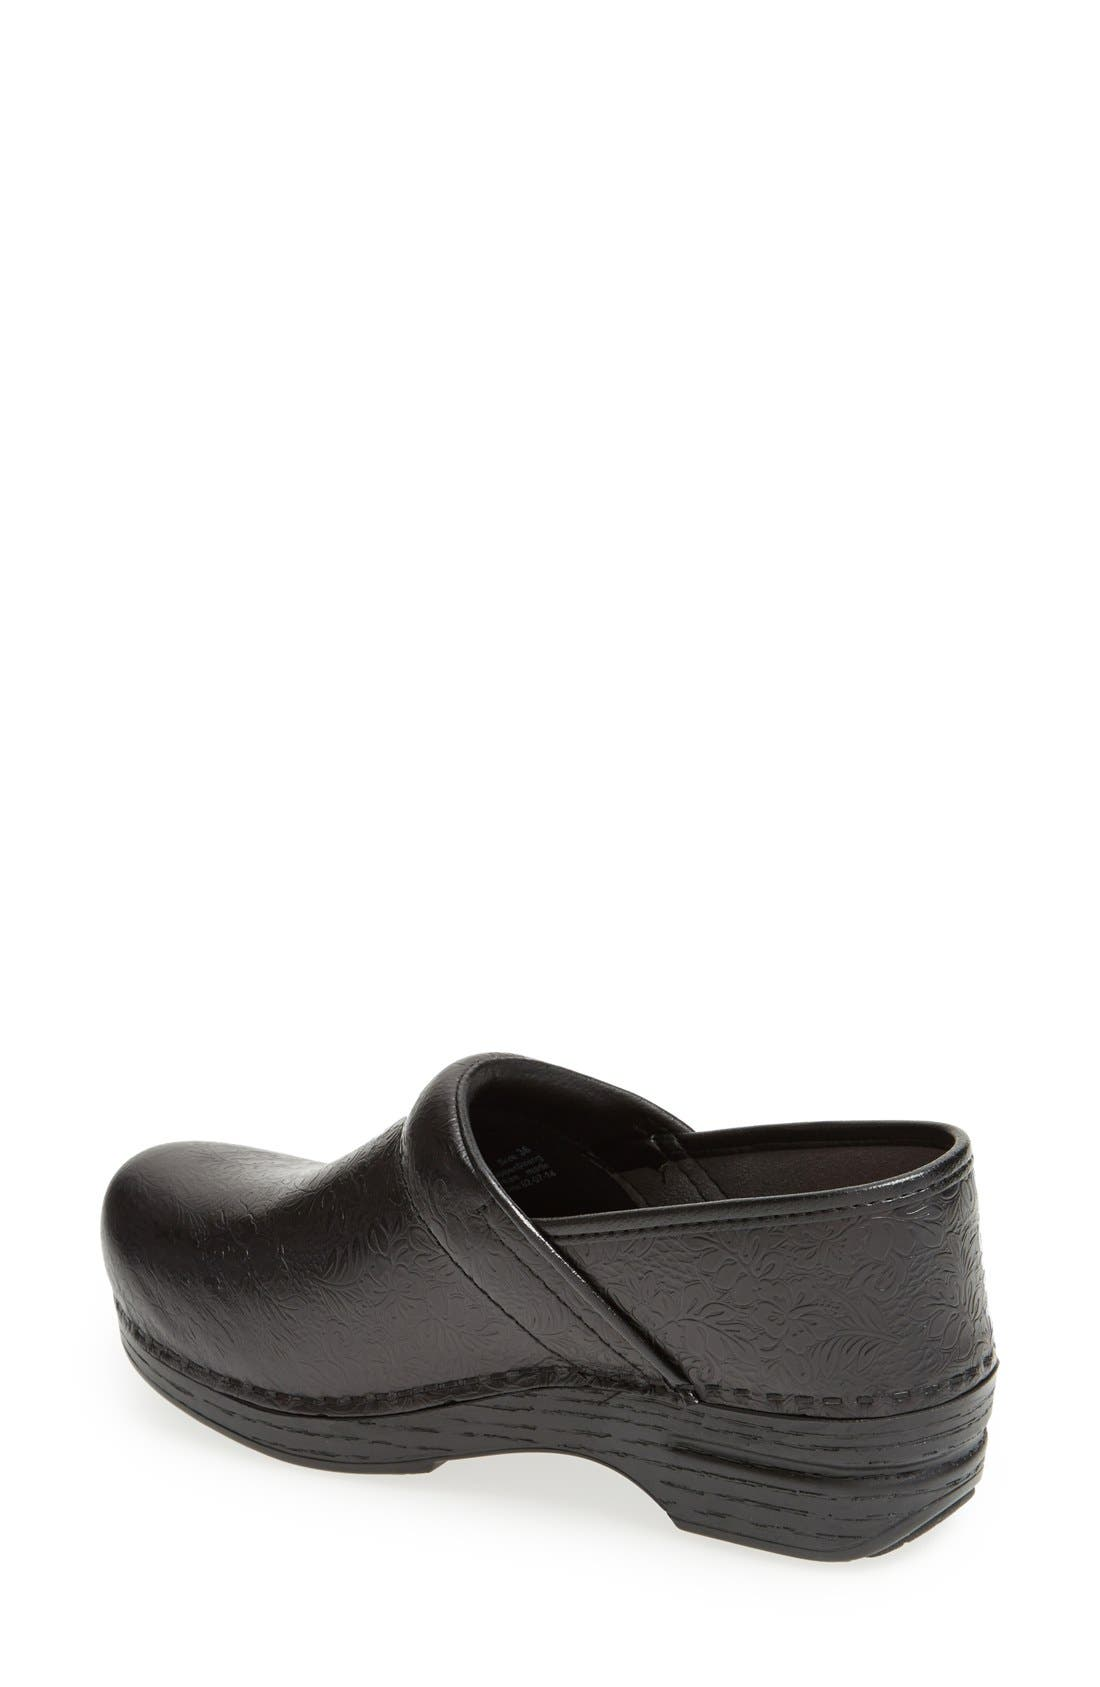 Alternate Image 2  - Dansko 'Pro XP' Clog (Women)